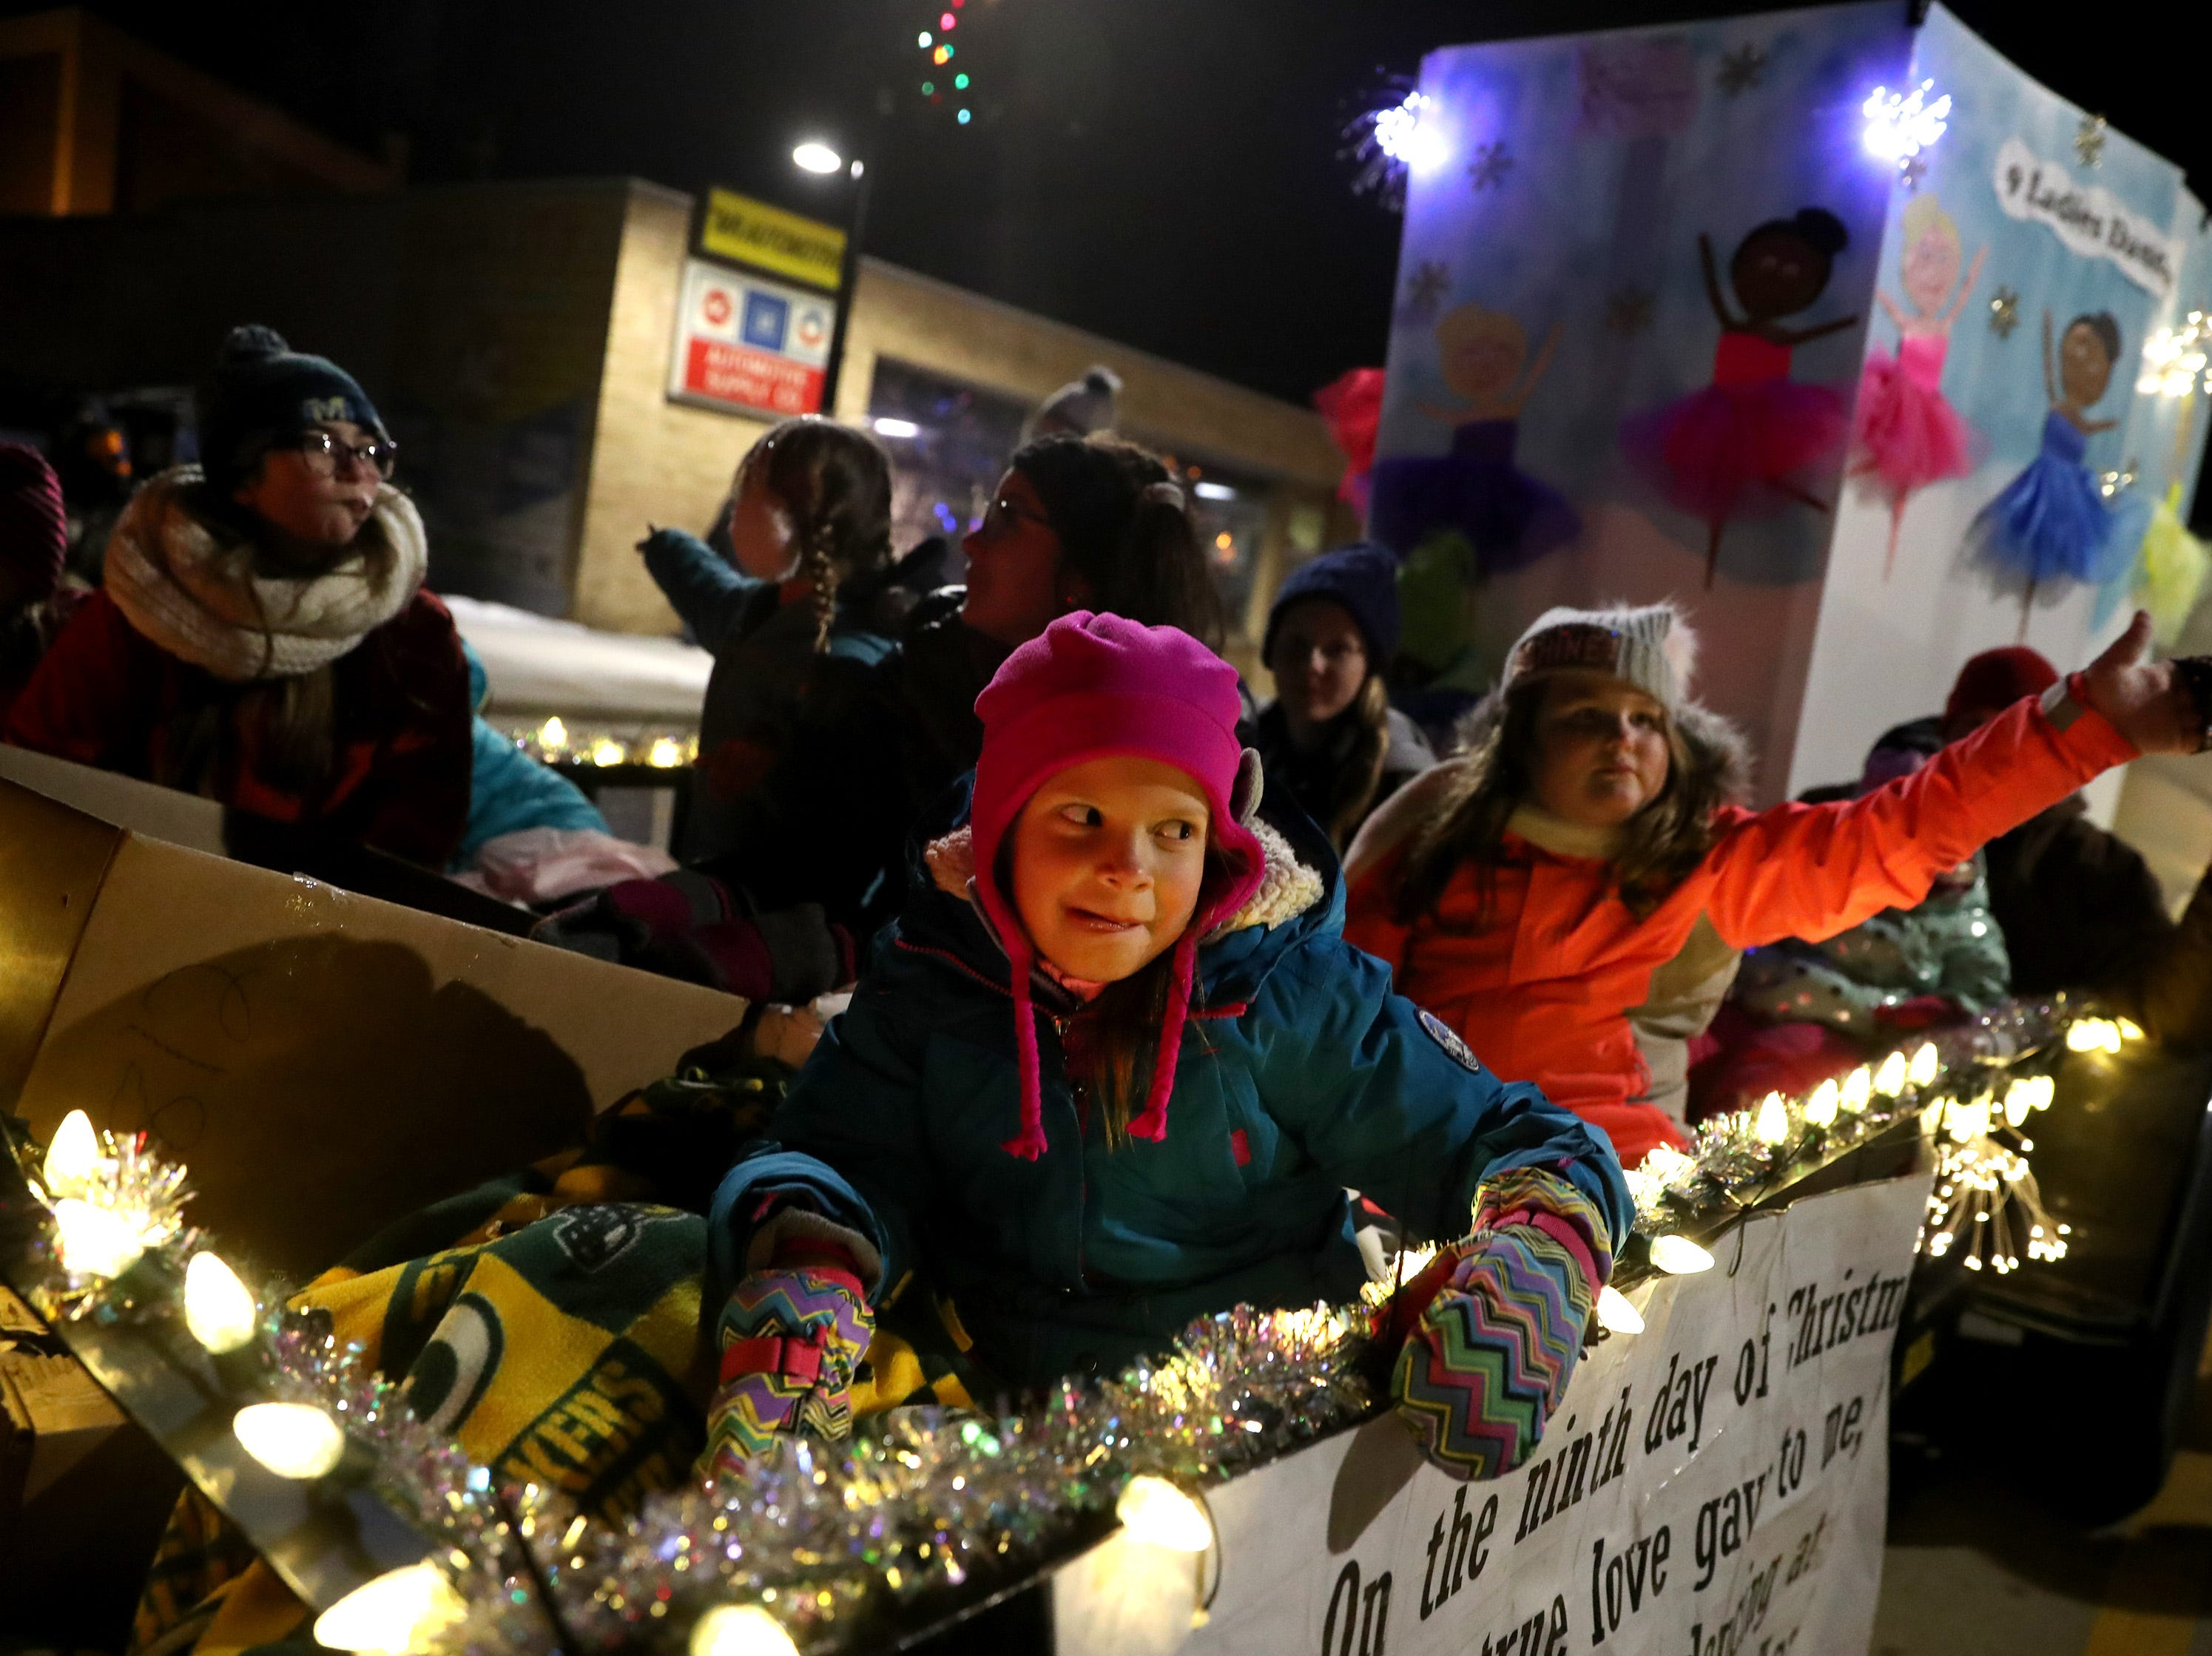 Children on the Heart of the Valley Dance Academy float wave to people along the Electric City Christmas Parade route Tuesday, Dec. 4, 2018, in Kaukauna, Wis.